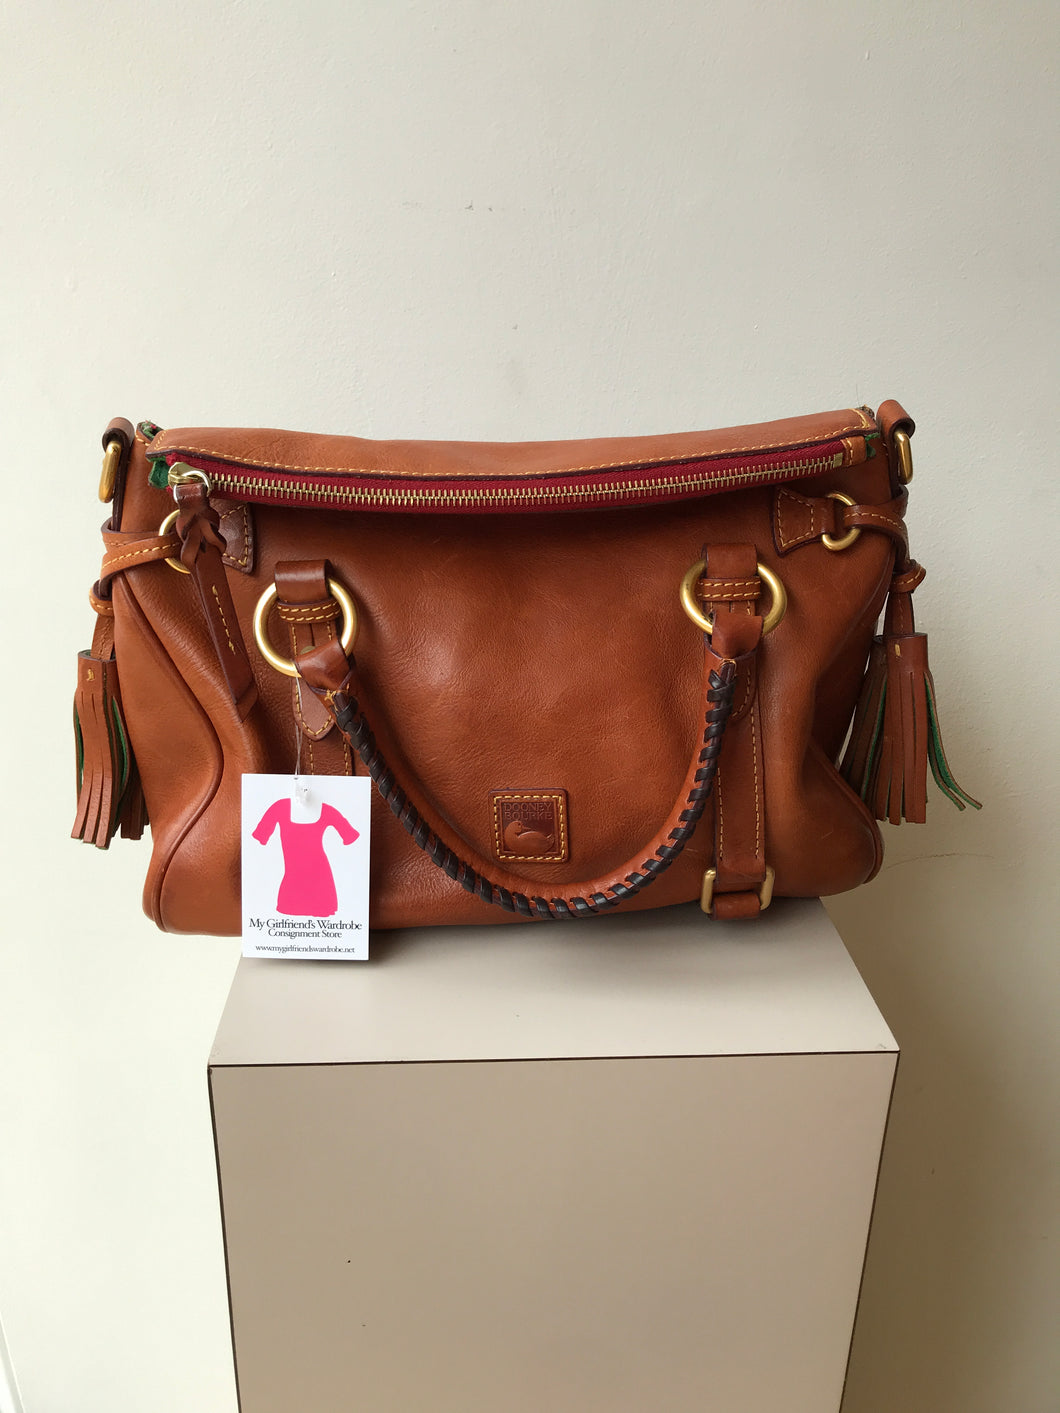 Dooney and Bourke brown small satchel - My Girlfriend's Wardrobe